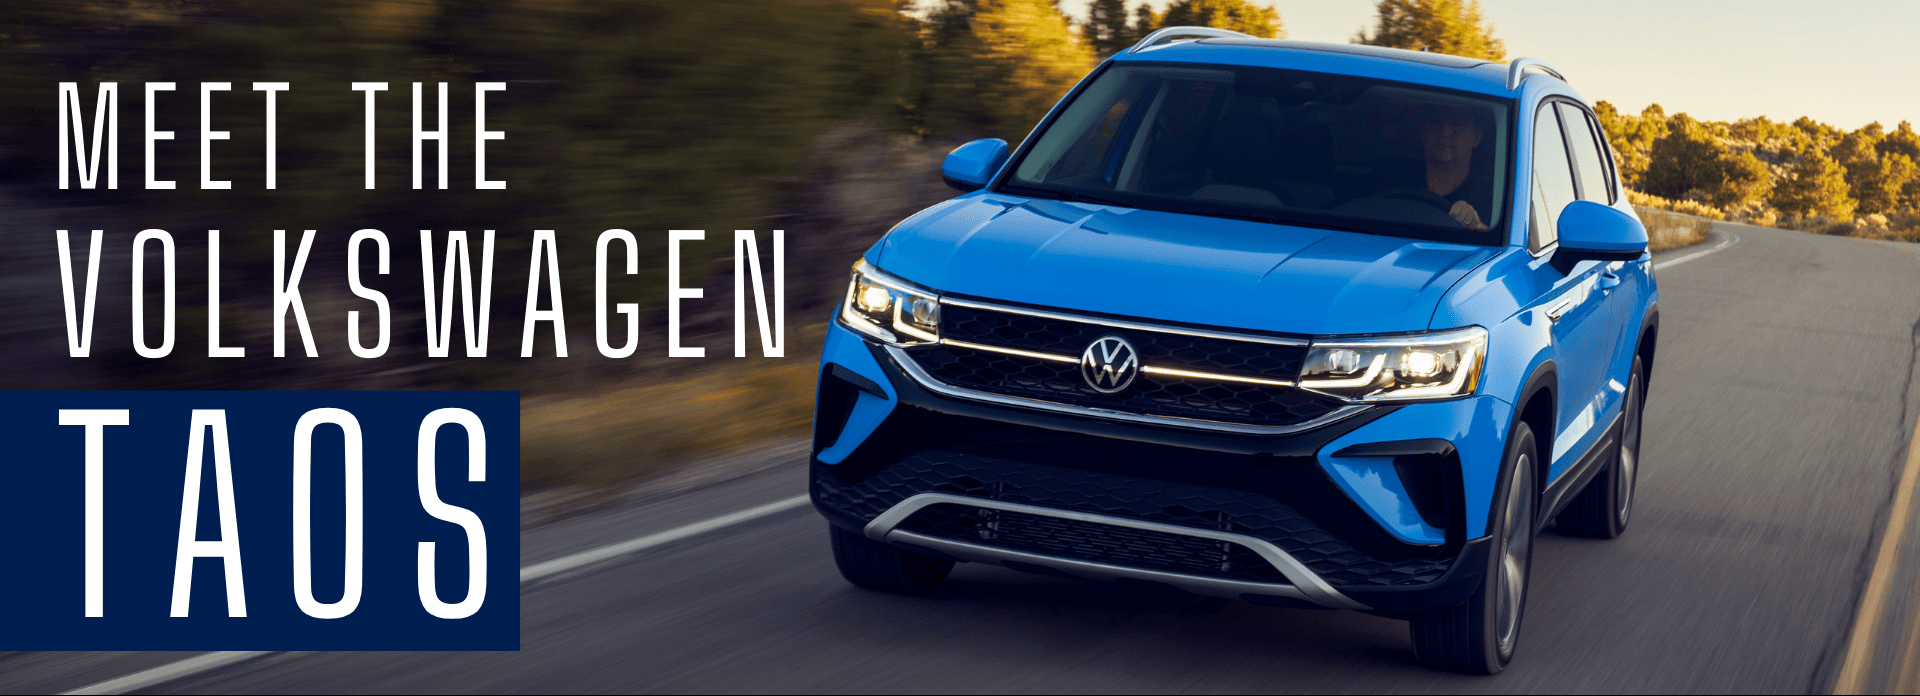 blue 2022 volkswagen taos driving toward the camera down a curved road